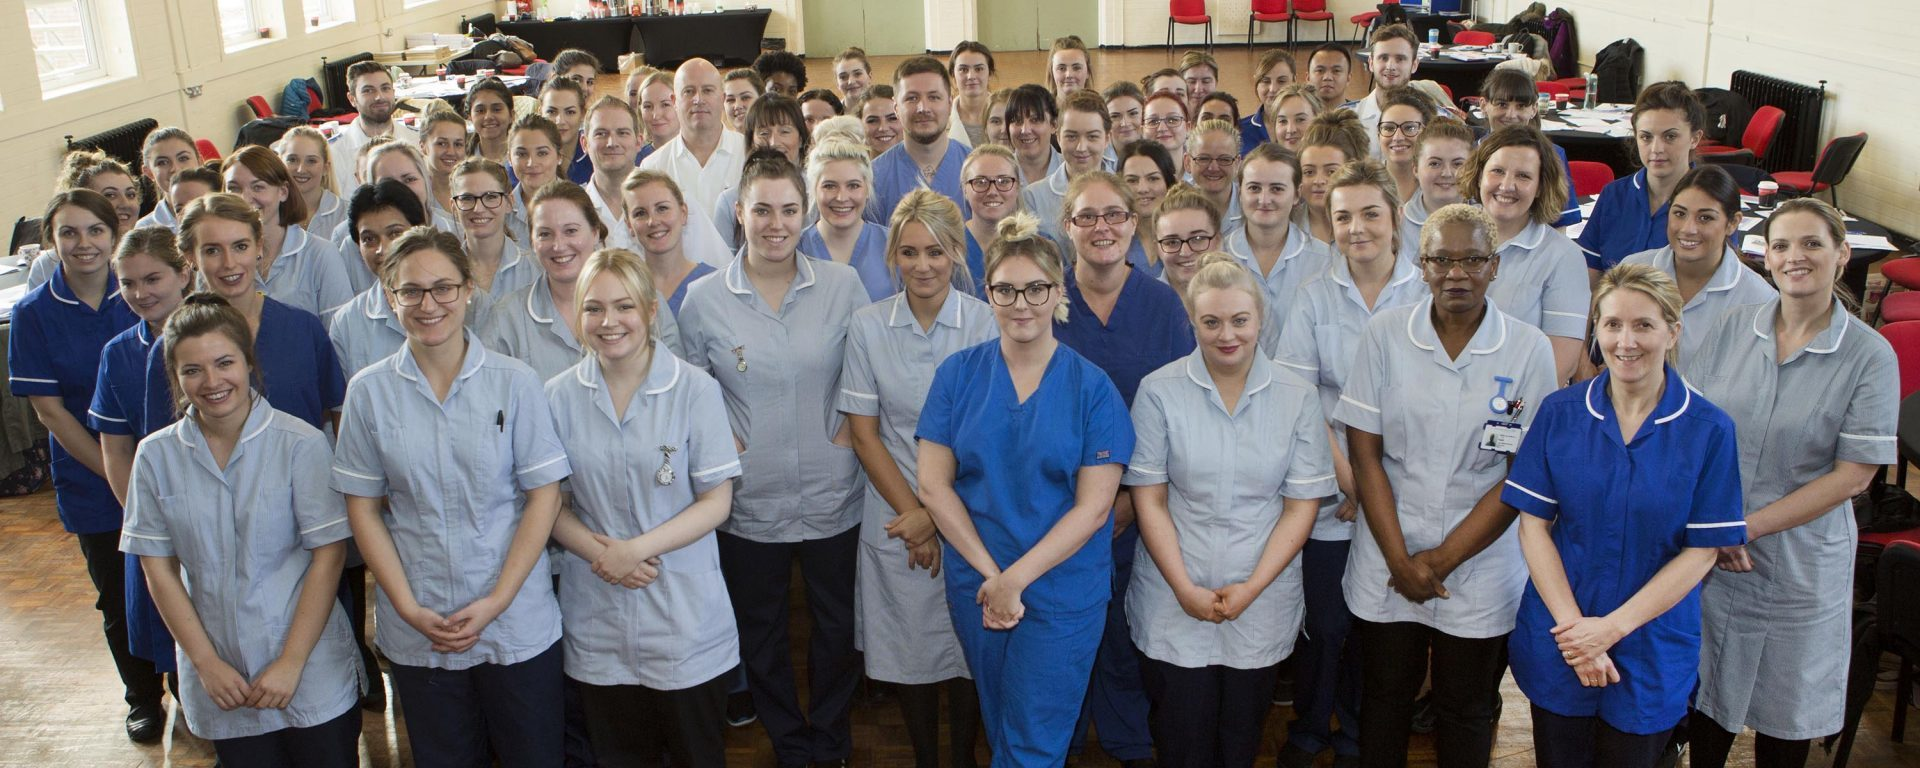 Staff at the NHS trust.